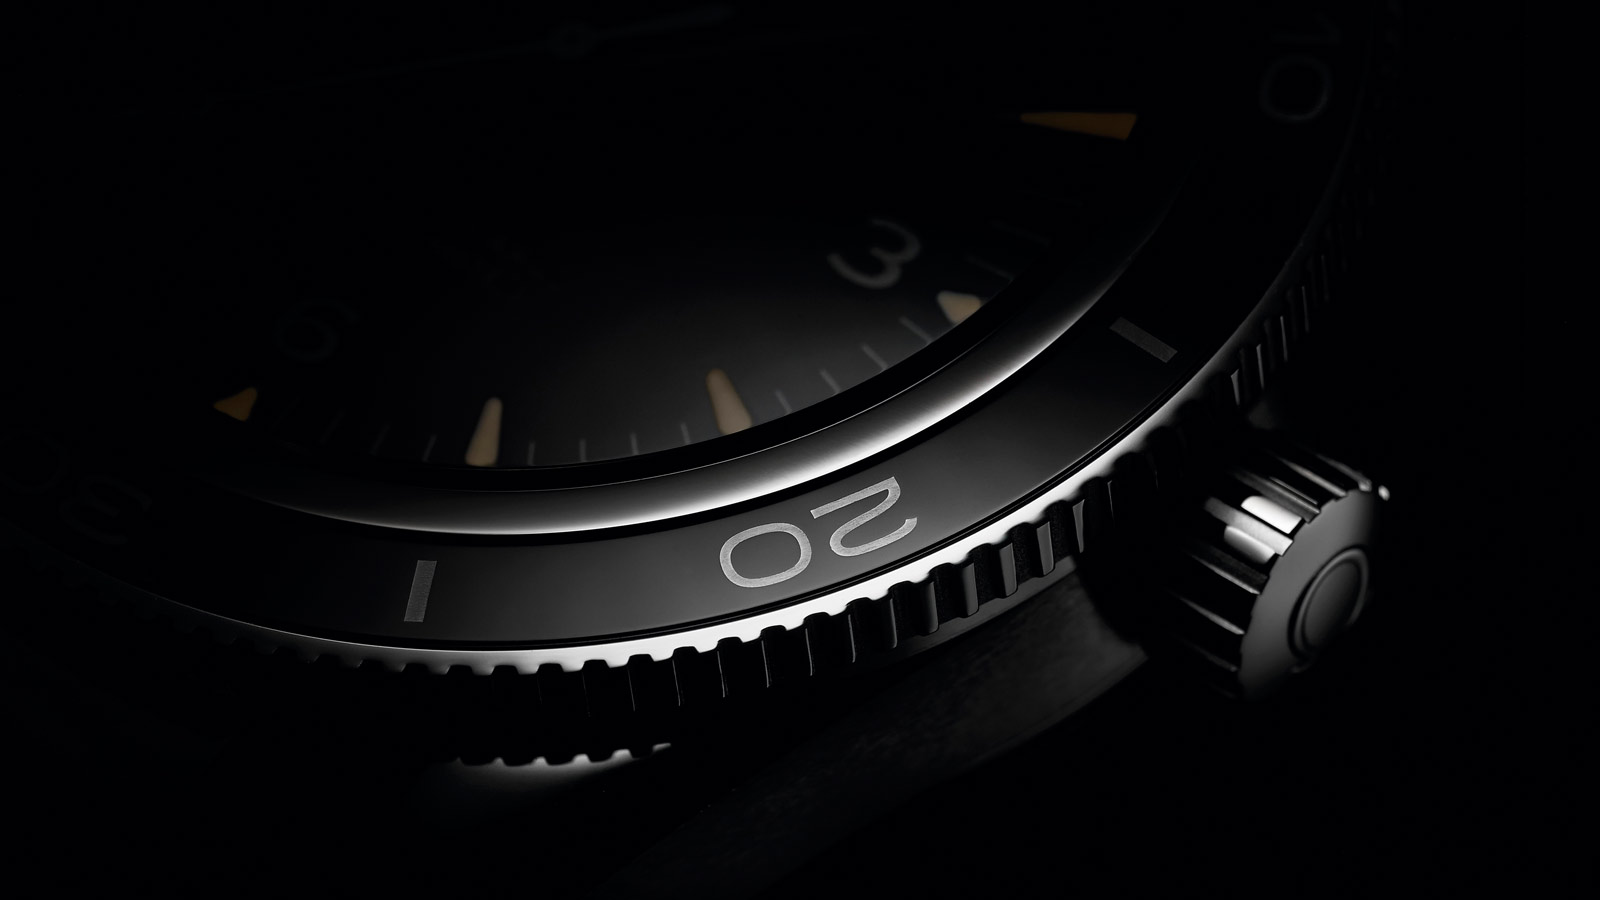 Seamaster Seamaster 300 Seamaster 300 Omega Master Co‑Axial 41 mm - 233.30.41.21.01.001 - Visualizzare 4